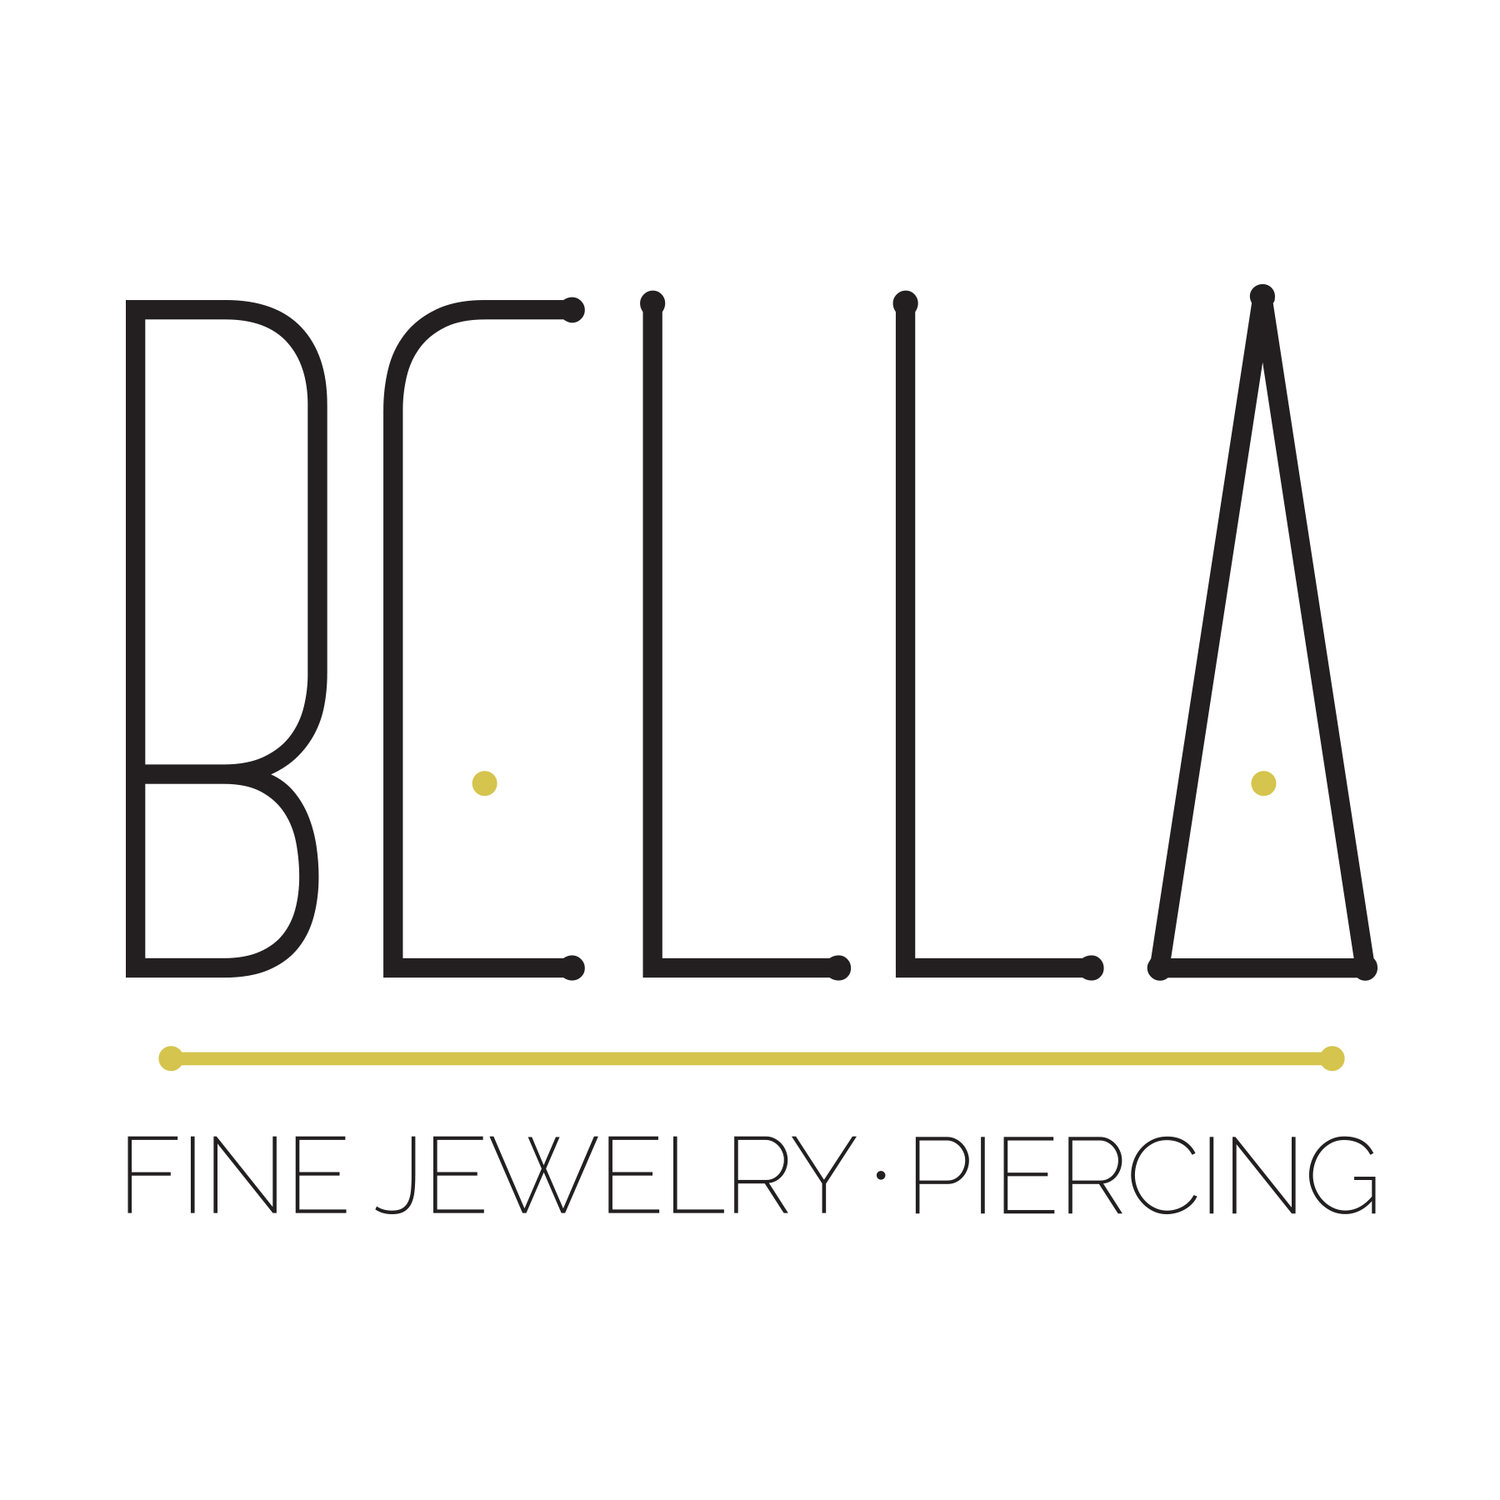 Fine jewelry and piercing bella fine jewelry and piercing pooptronica Choice Image